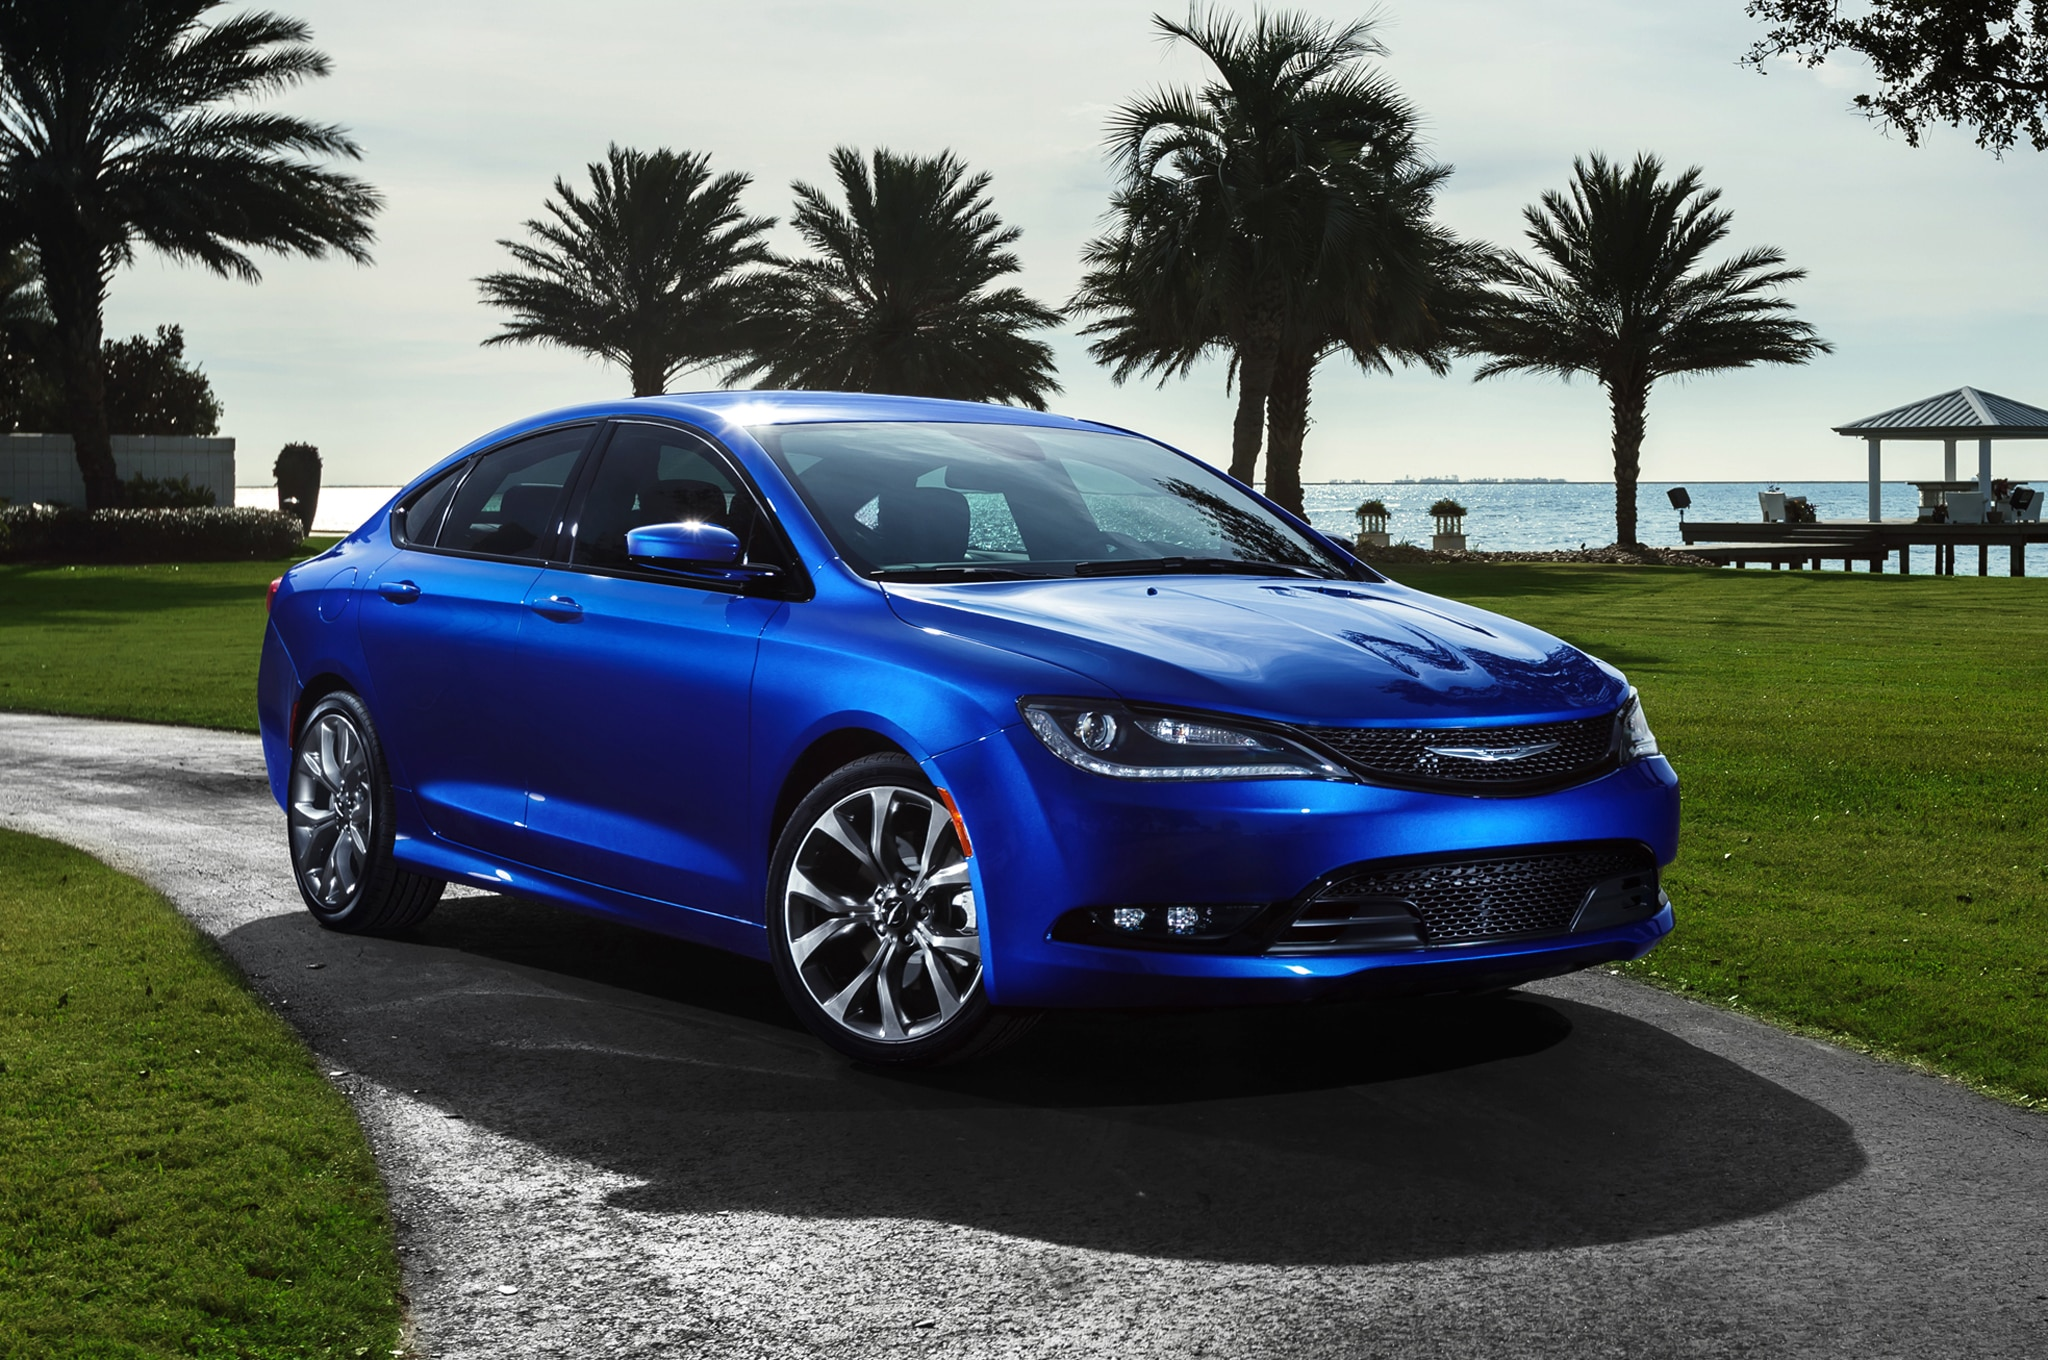 2015 Chrysler 200S Front Three Quarters View 02